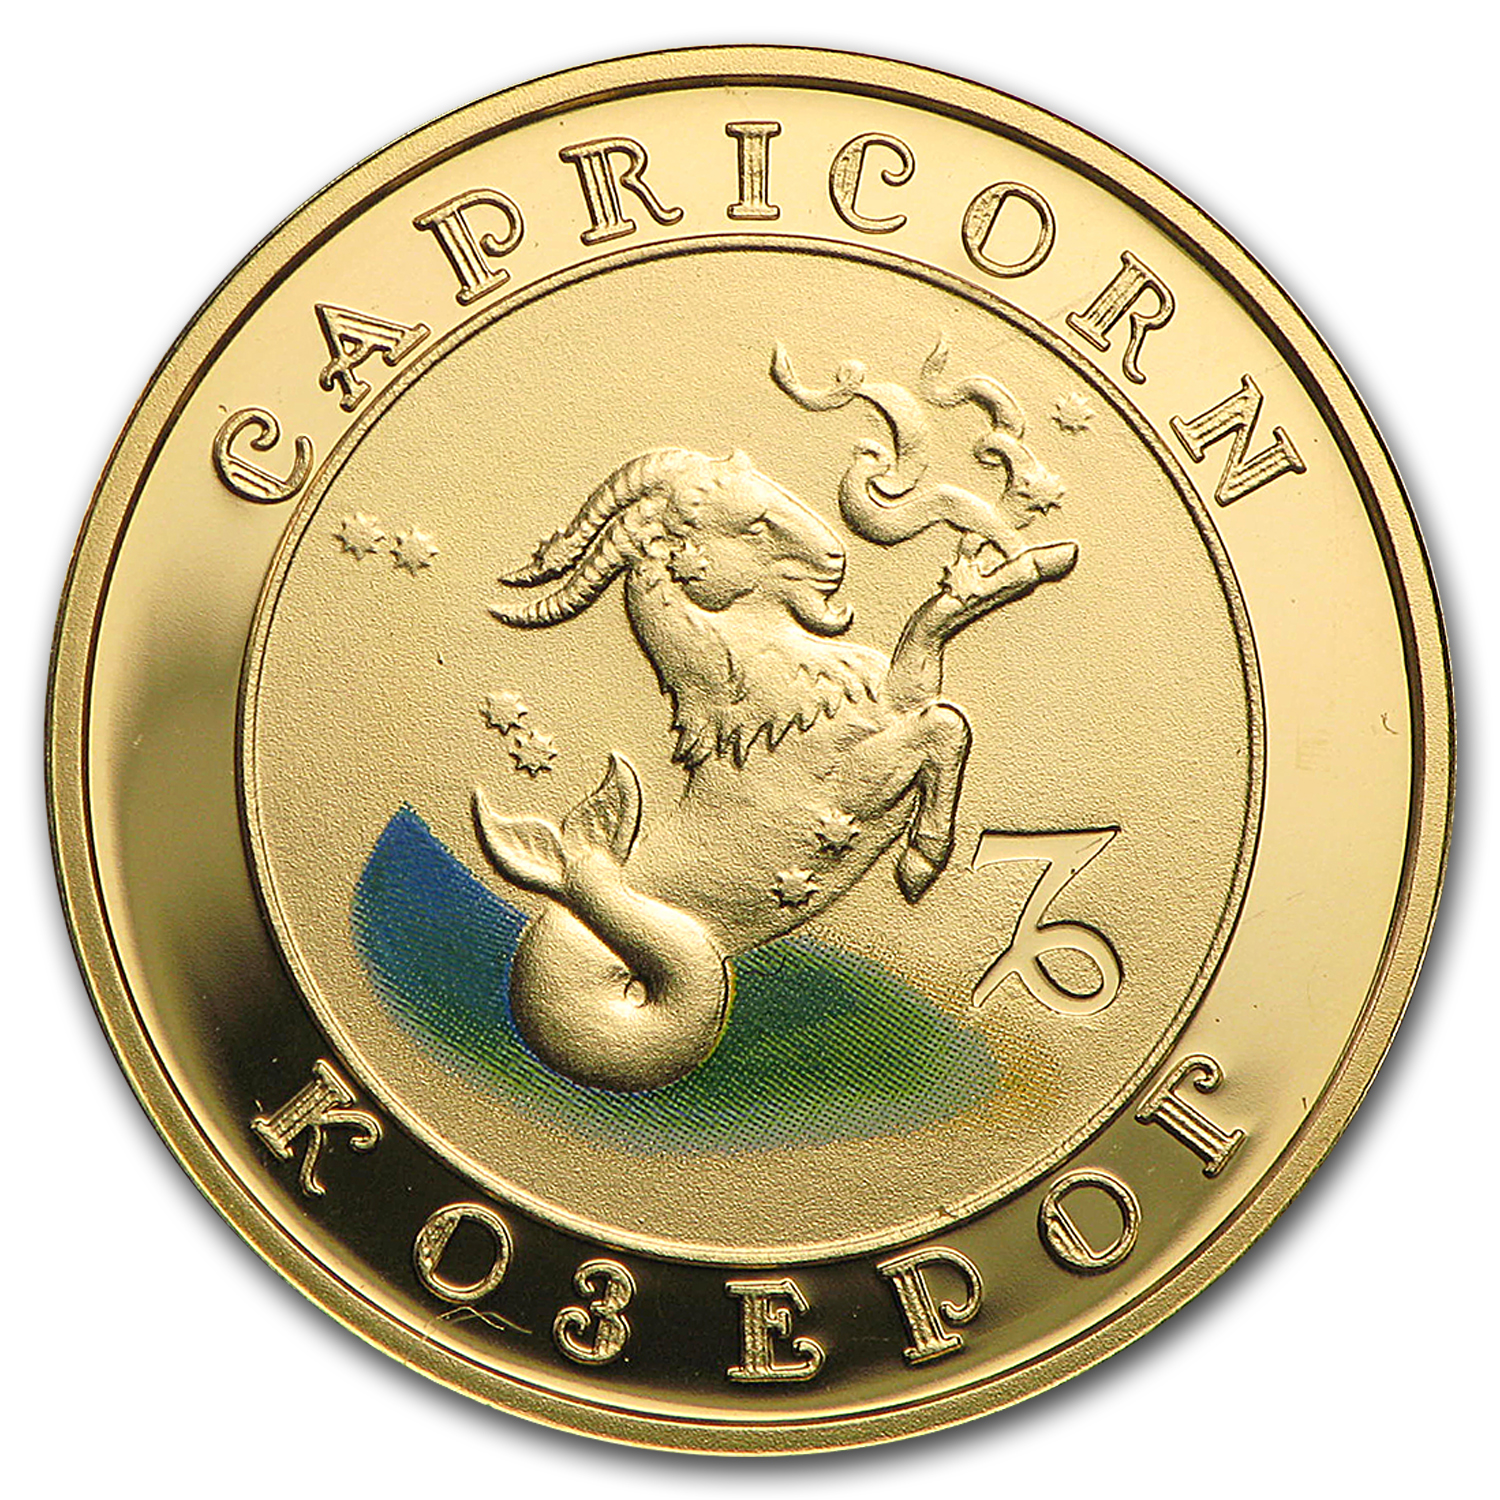 2008 Armenia Gold 10000 Drams Zodiac Series (Capricorn)